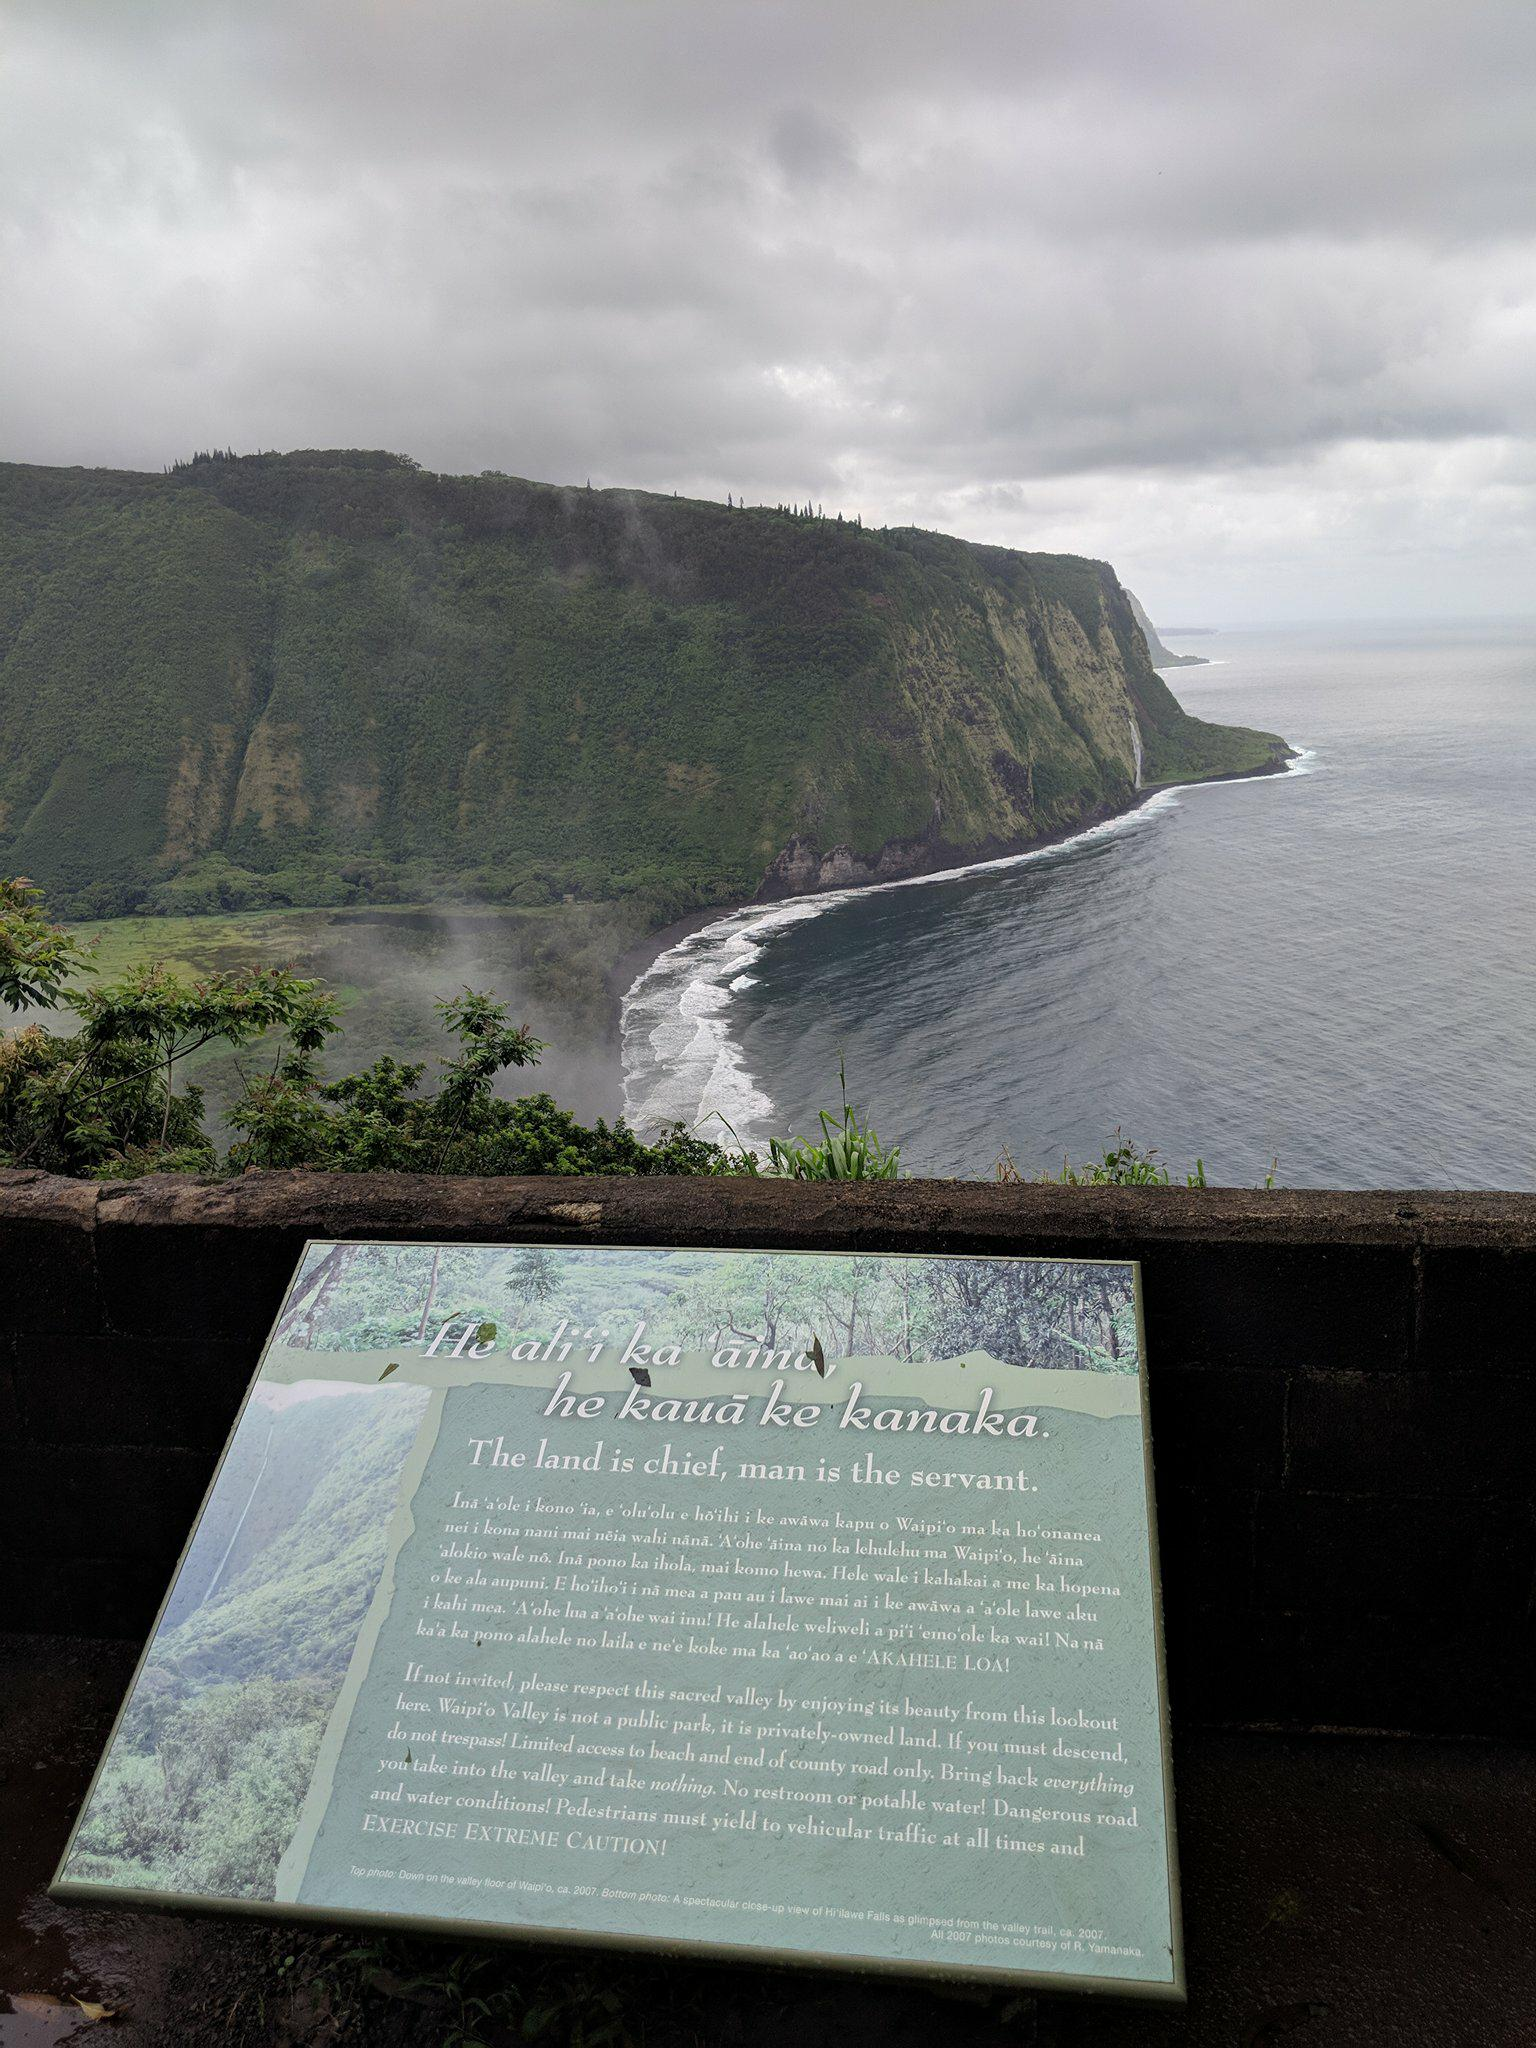 """Image Description: Waipi'o Valley with Placard reading, in part: """"If not invited, please respect this sacred valley by enjoying its beauty from this lookout here. Waipi'o Valley is not a public park, it is privately-owned land. If you must descend, do not trespass!"""""""